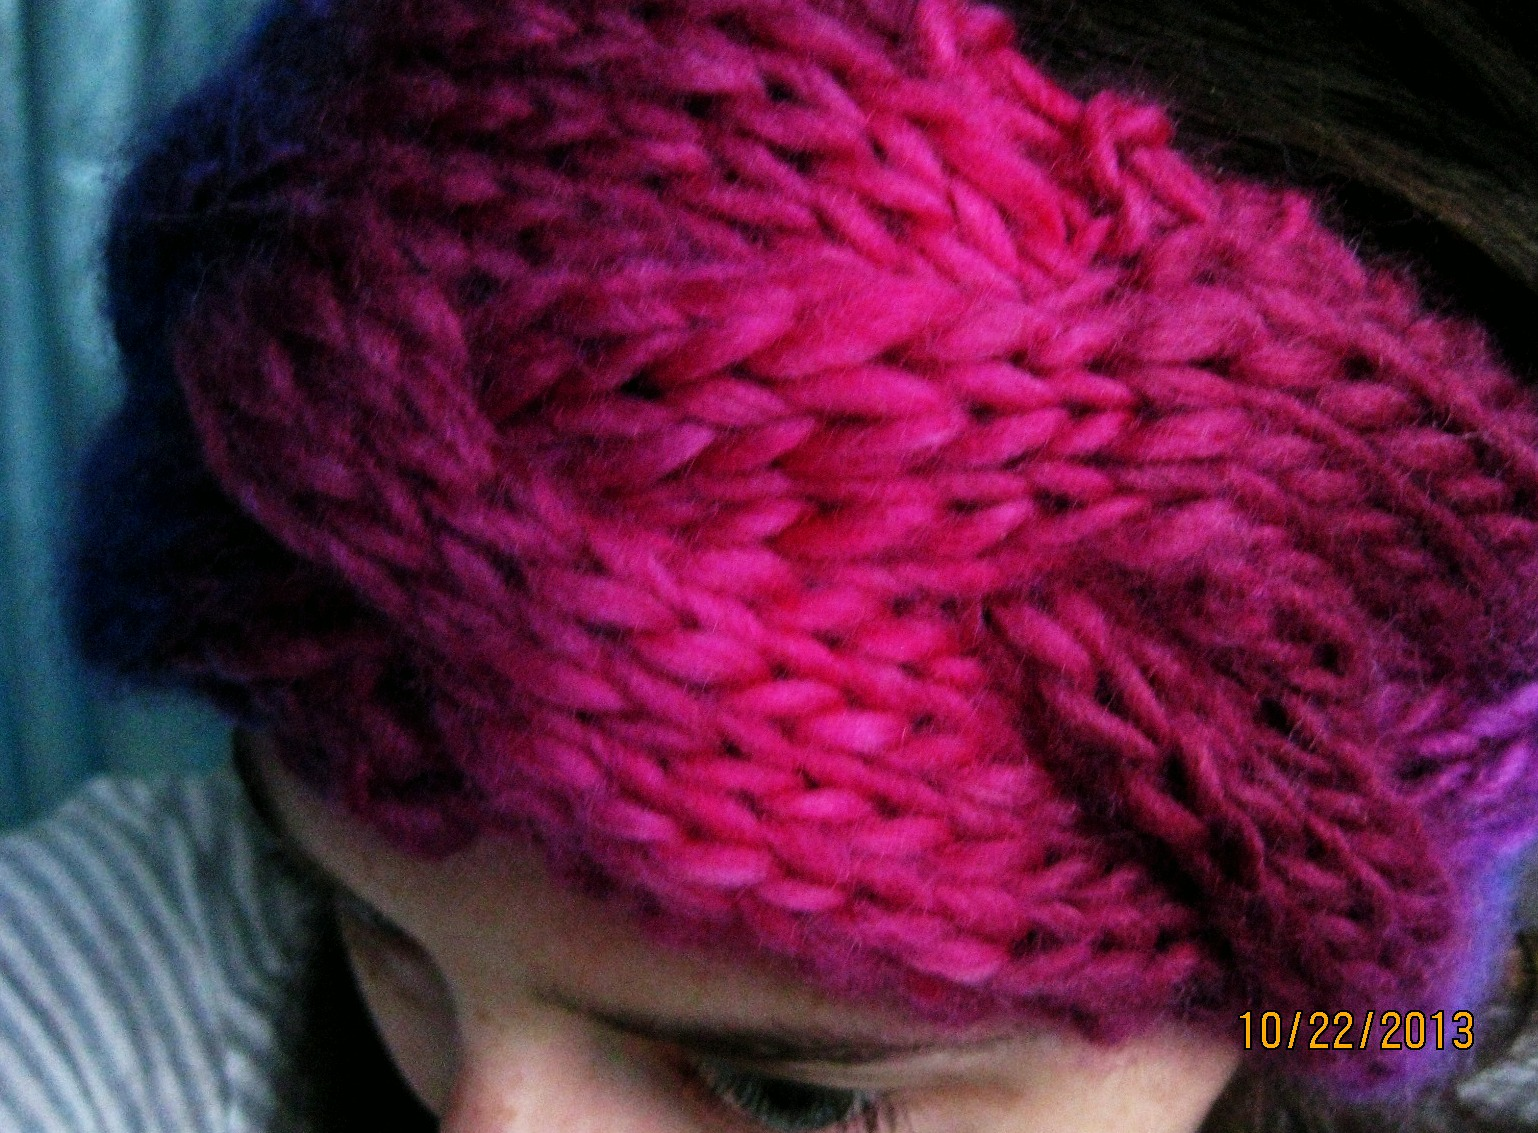 Knitting Pattern For Braided Cable Ear warmer | . R e l i s h .